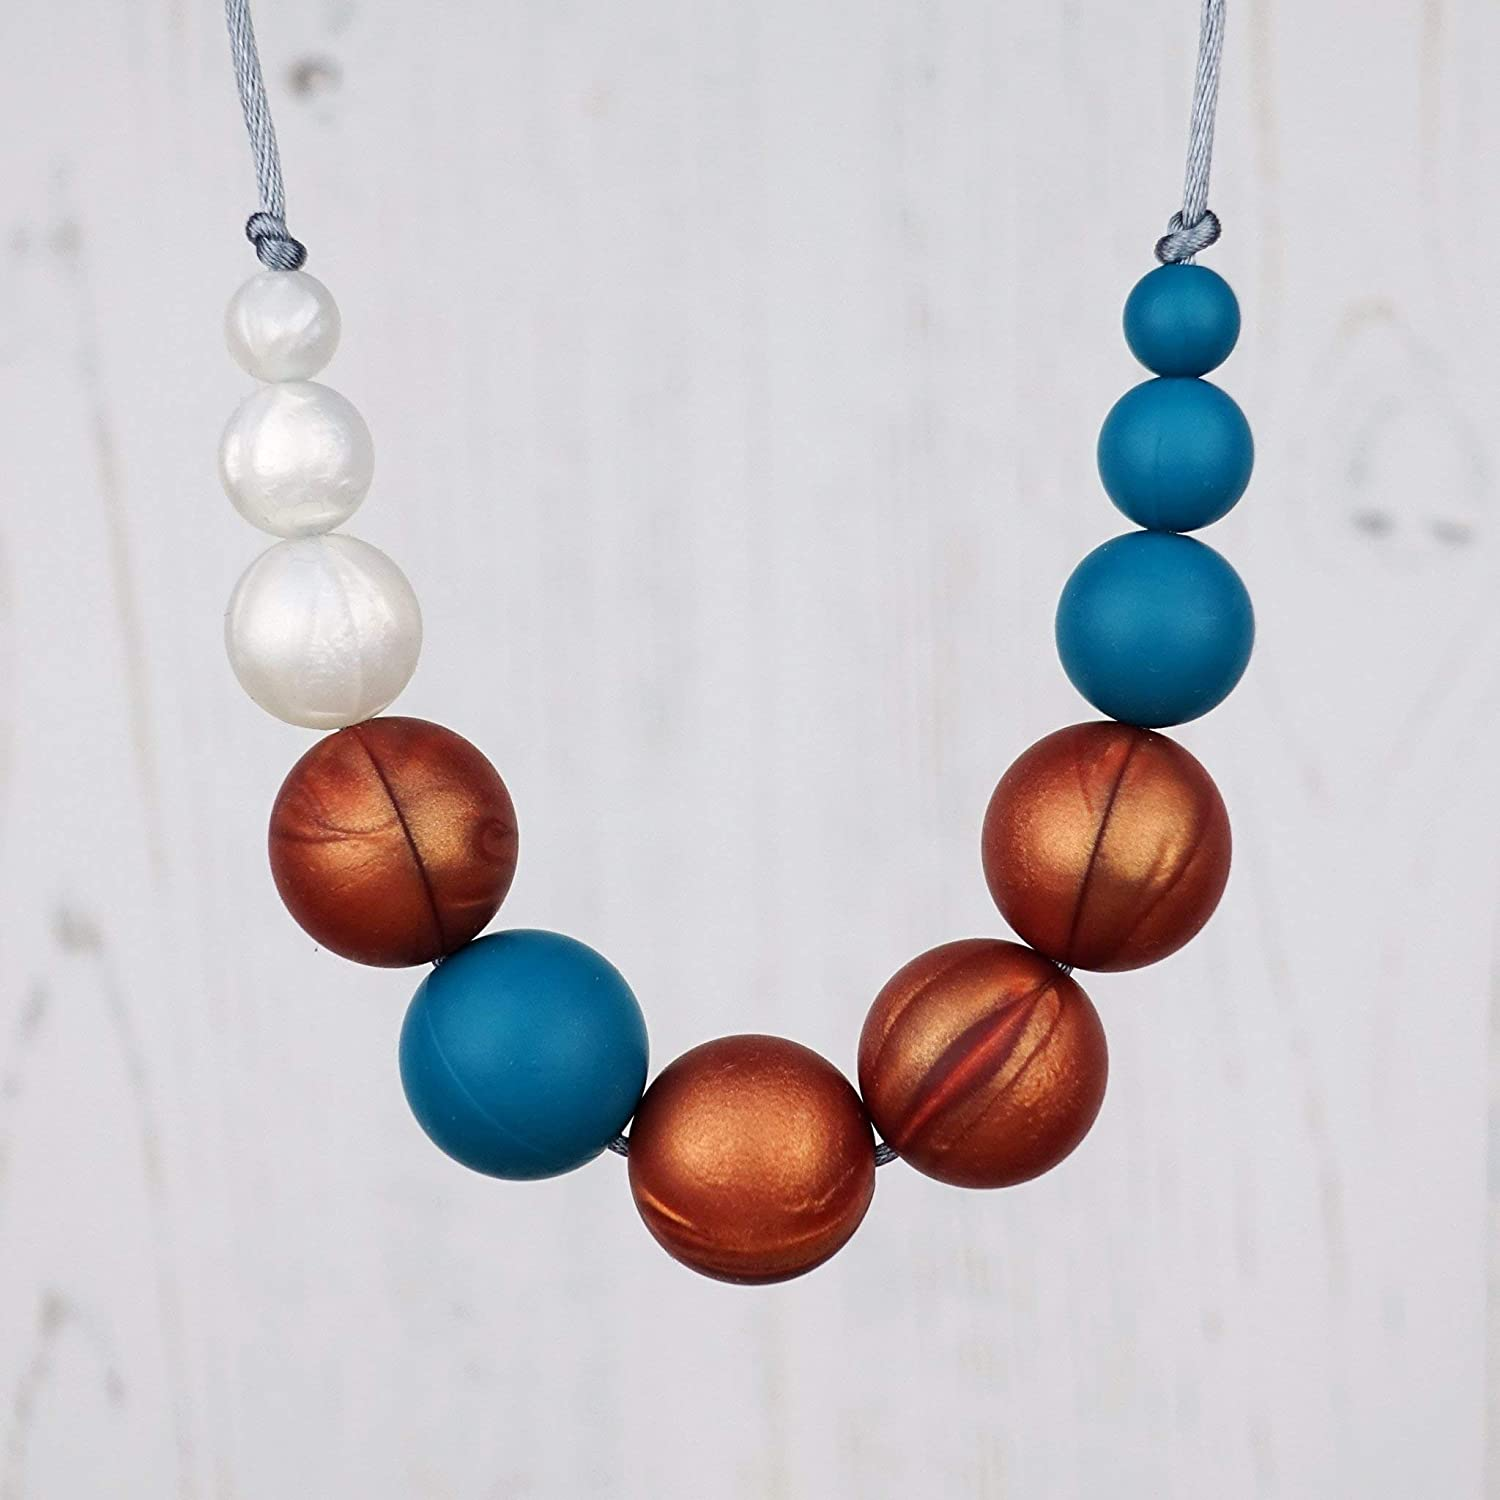 Silicone Teething Jewellery for Breastfeeding and Baby Wearing. Teething Necklace - PHOEBE: LUNAR